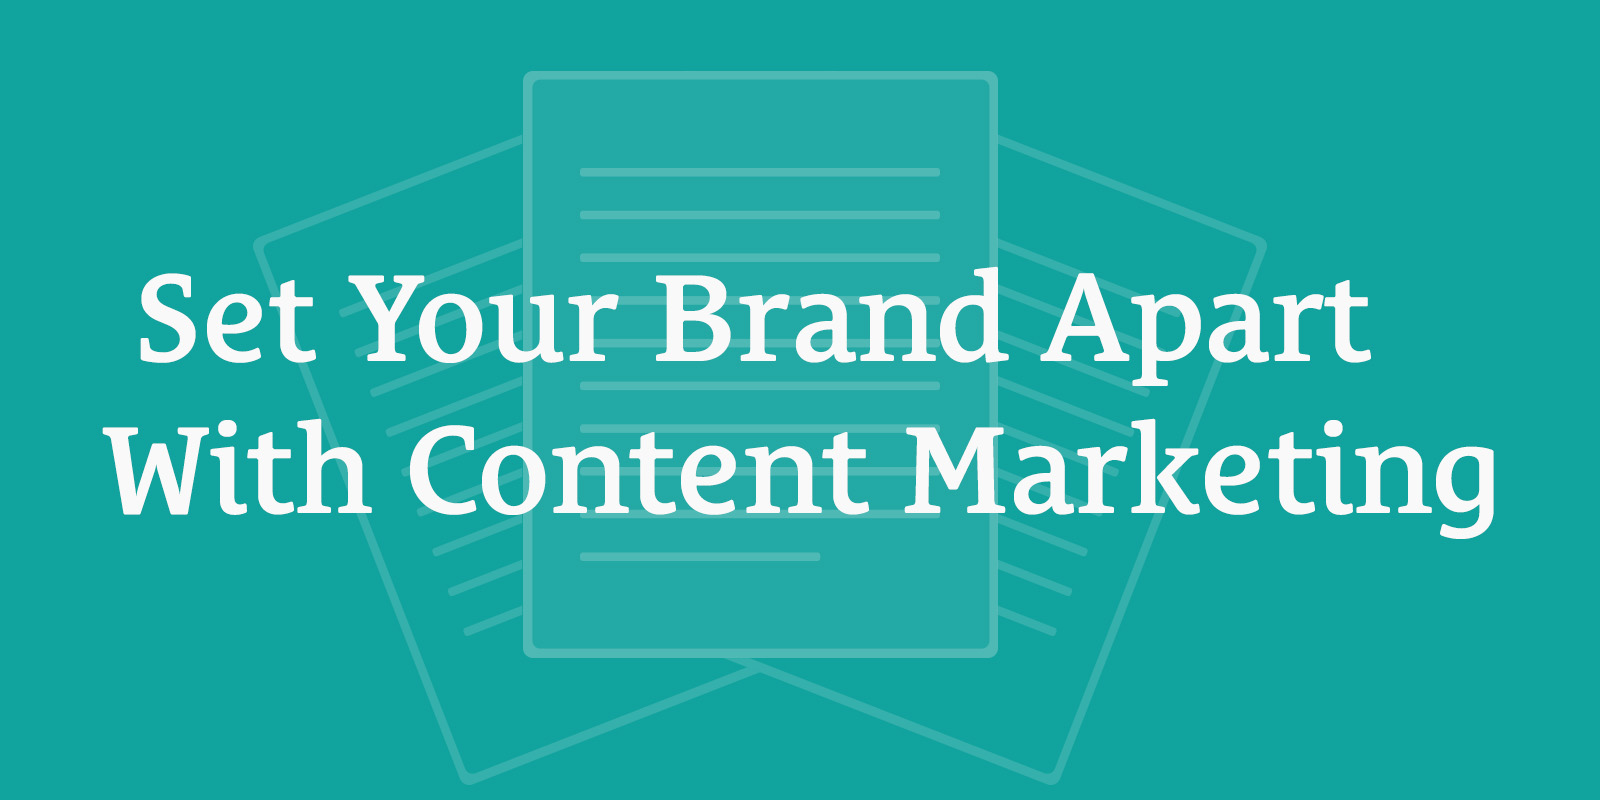 Set Your Brand Apart With Content Marketing